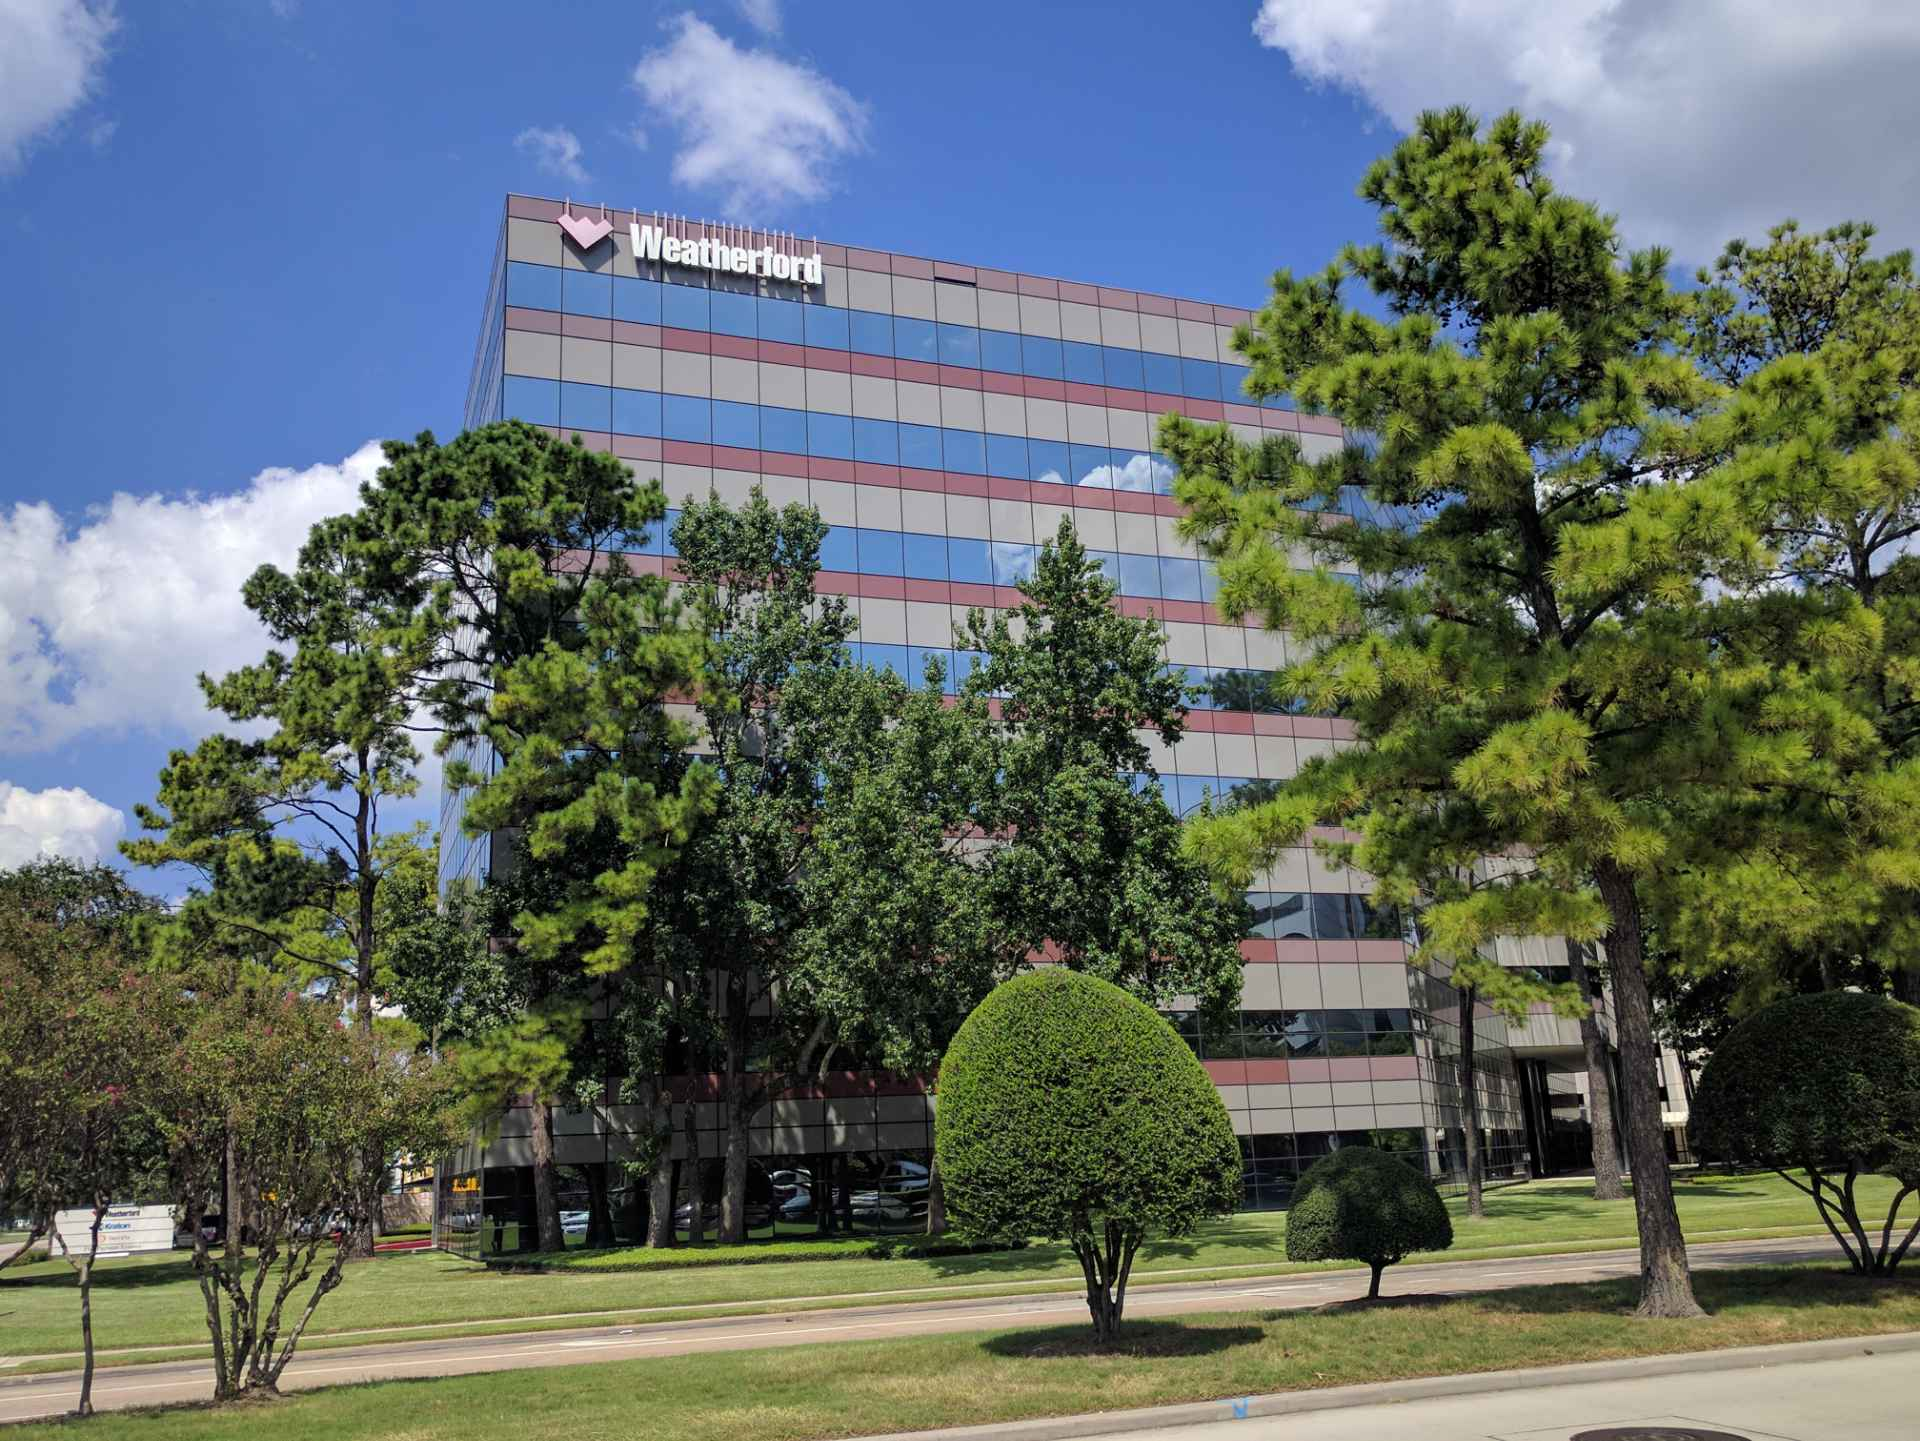 Weatherford office in Houston, Texas.